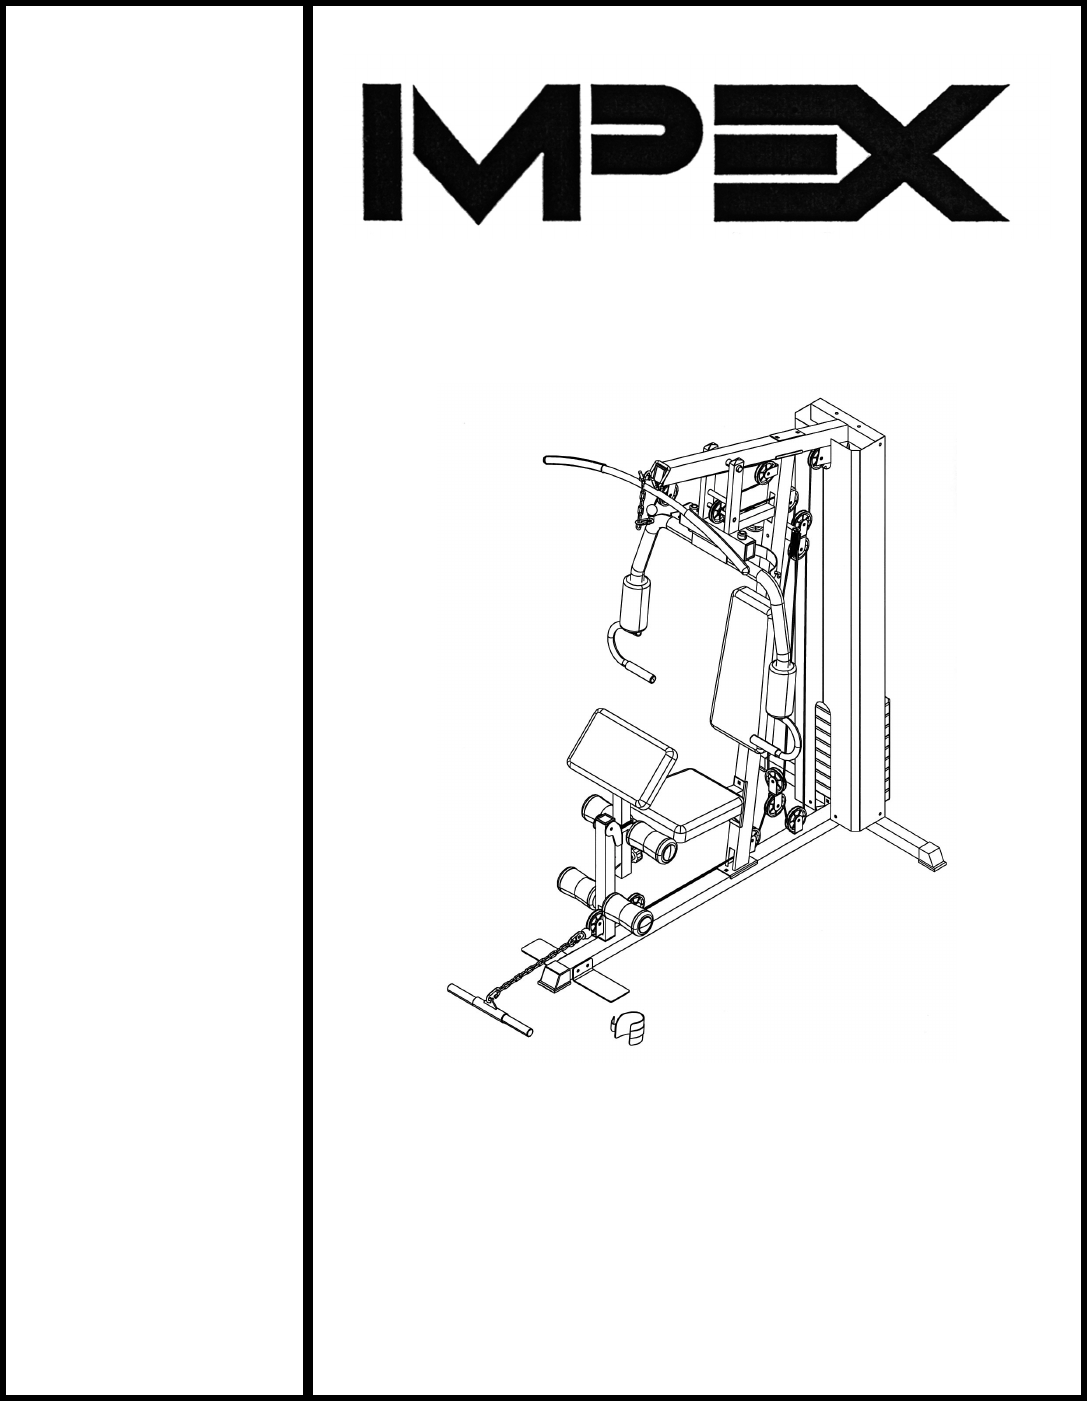 impex home gym mwm 1558 user guide manualsonline com rh office manualsonline com Impex Fitness Manual Marcy by Impex Manual